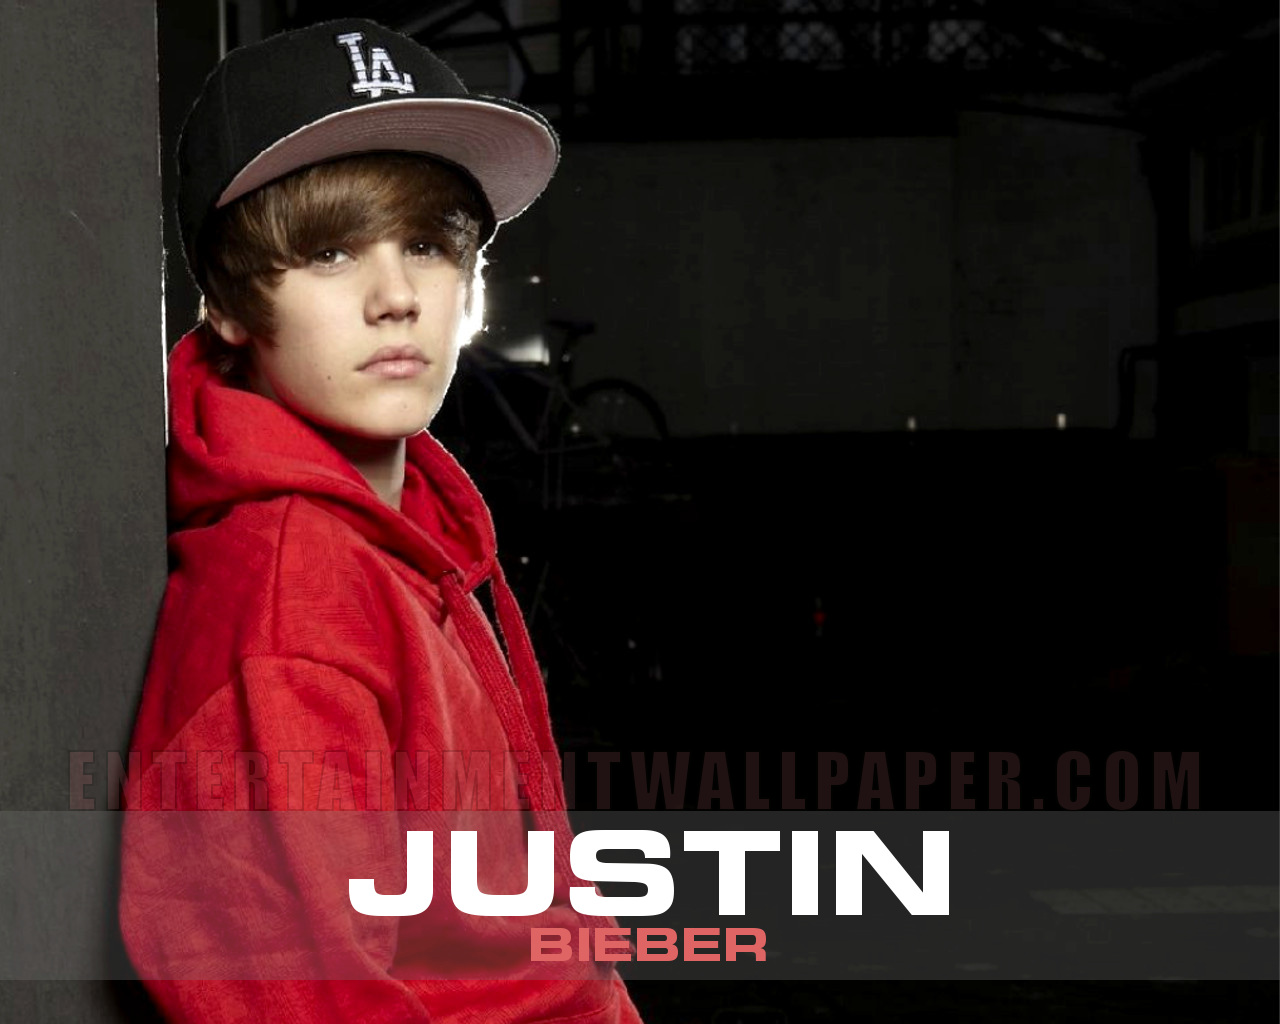 Justin Bieber Images Justinnazanin Hd Wallpaper And Background